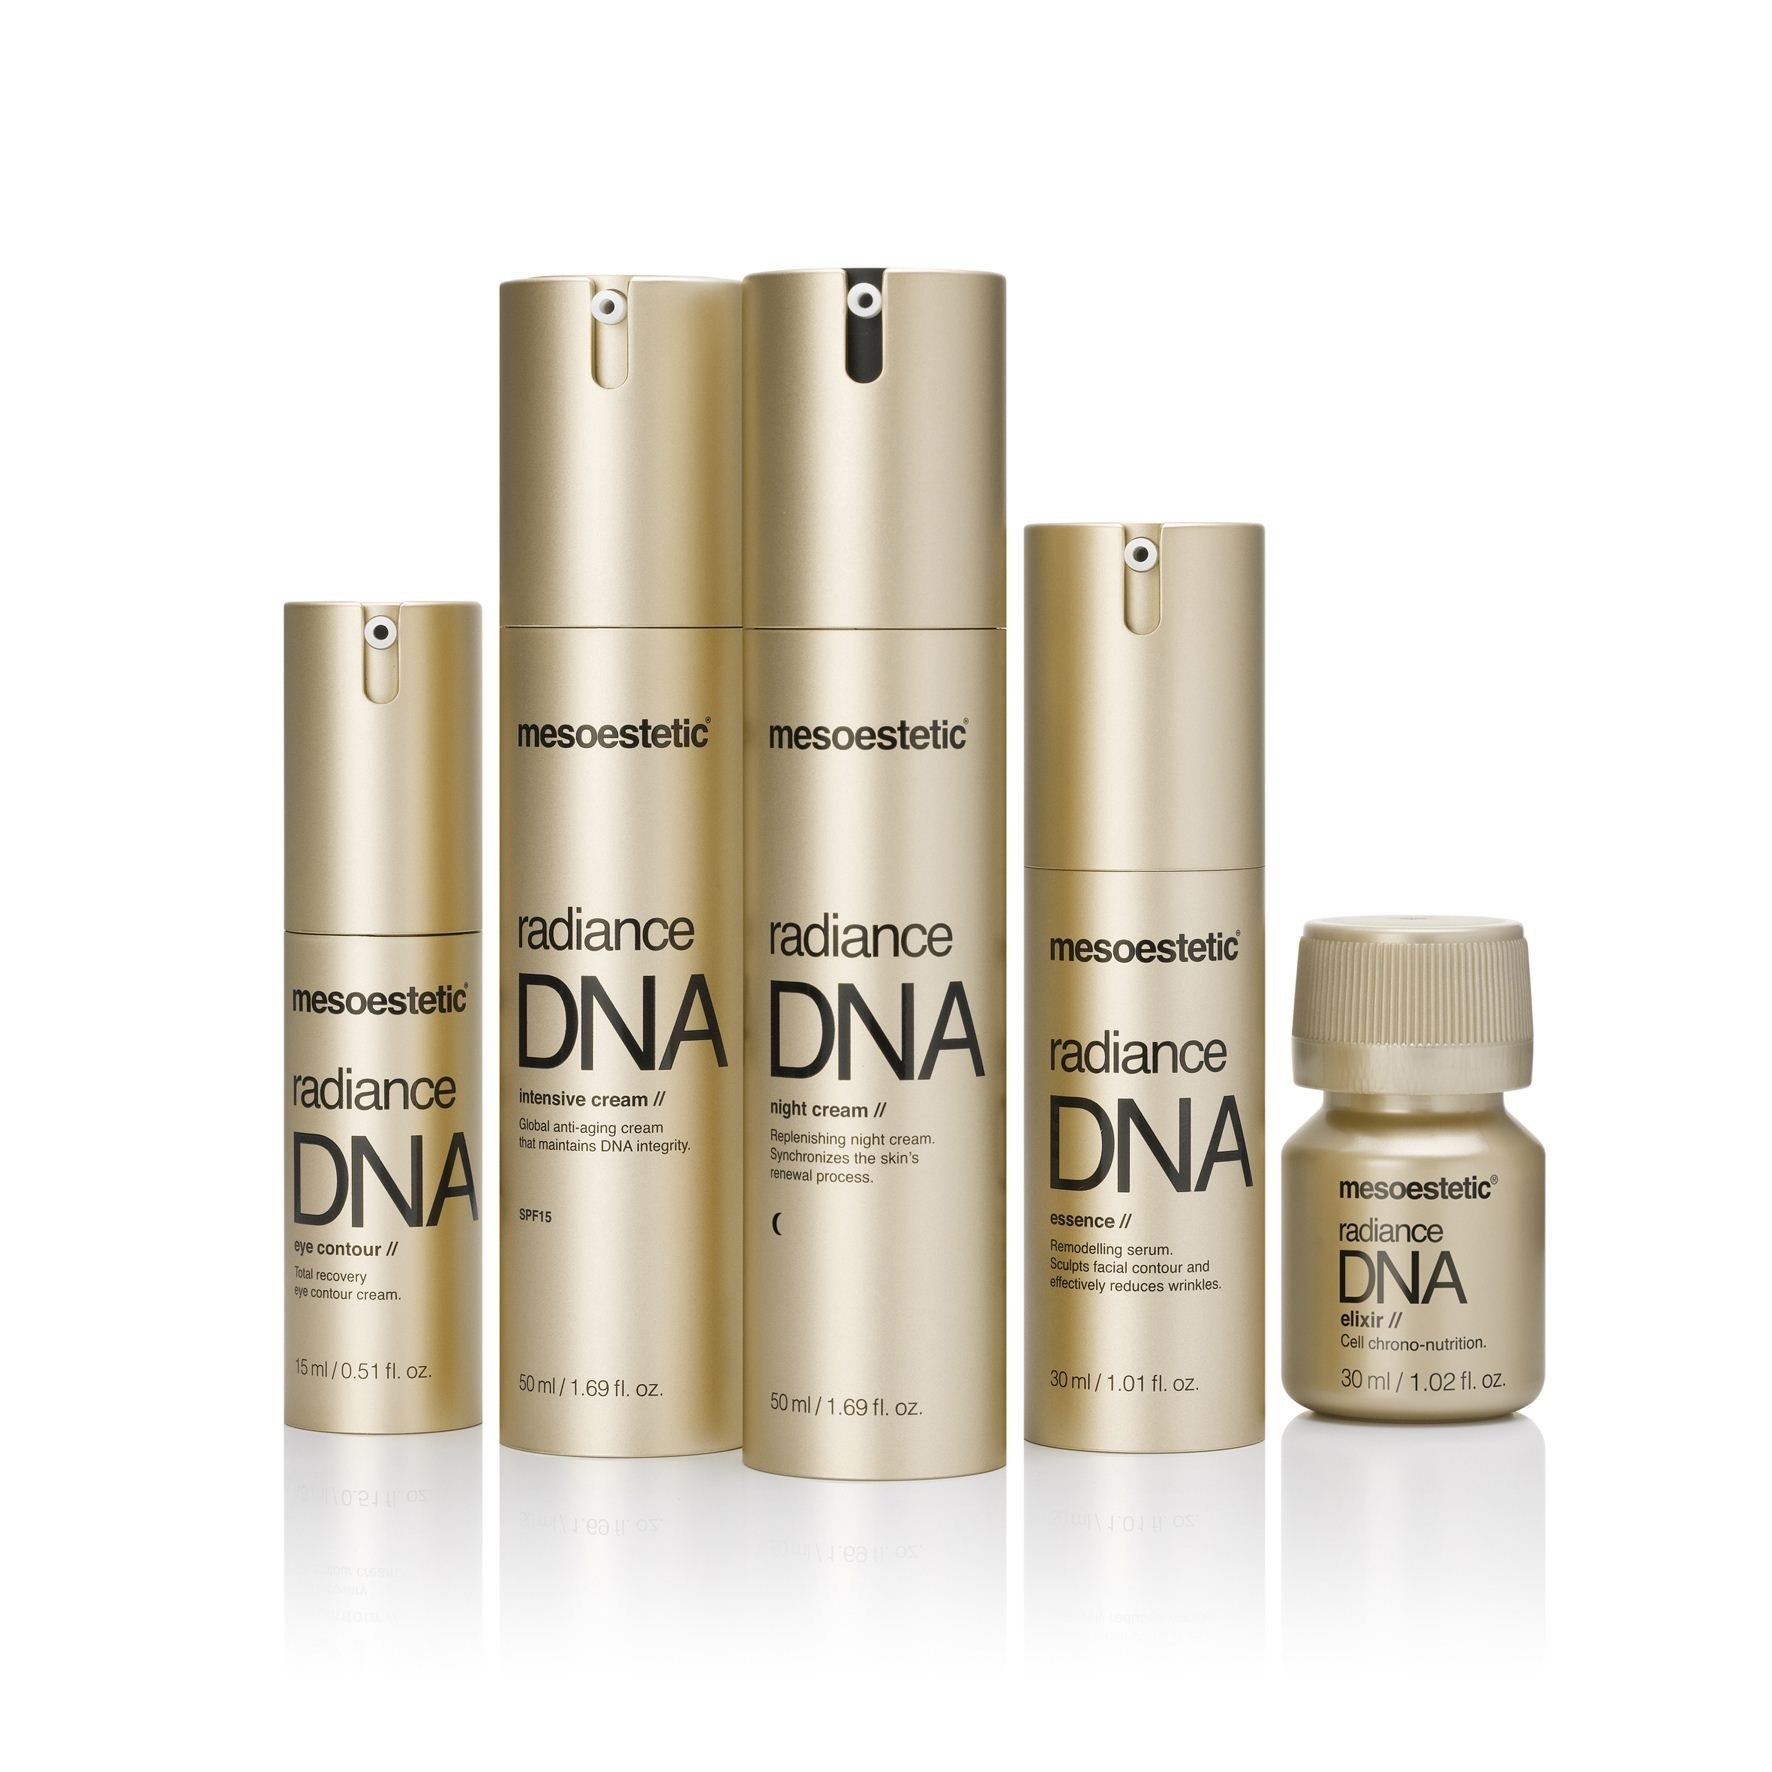 Radiance DNA global antiaging by Mesoestetic